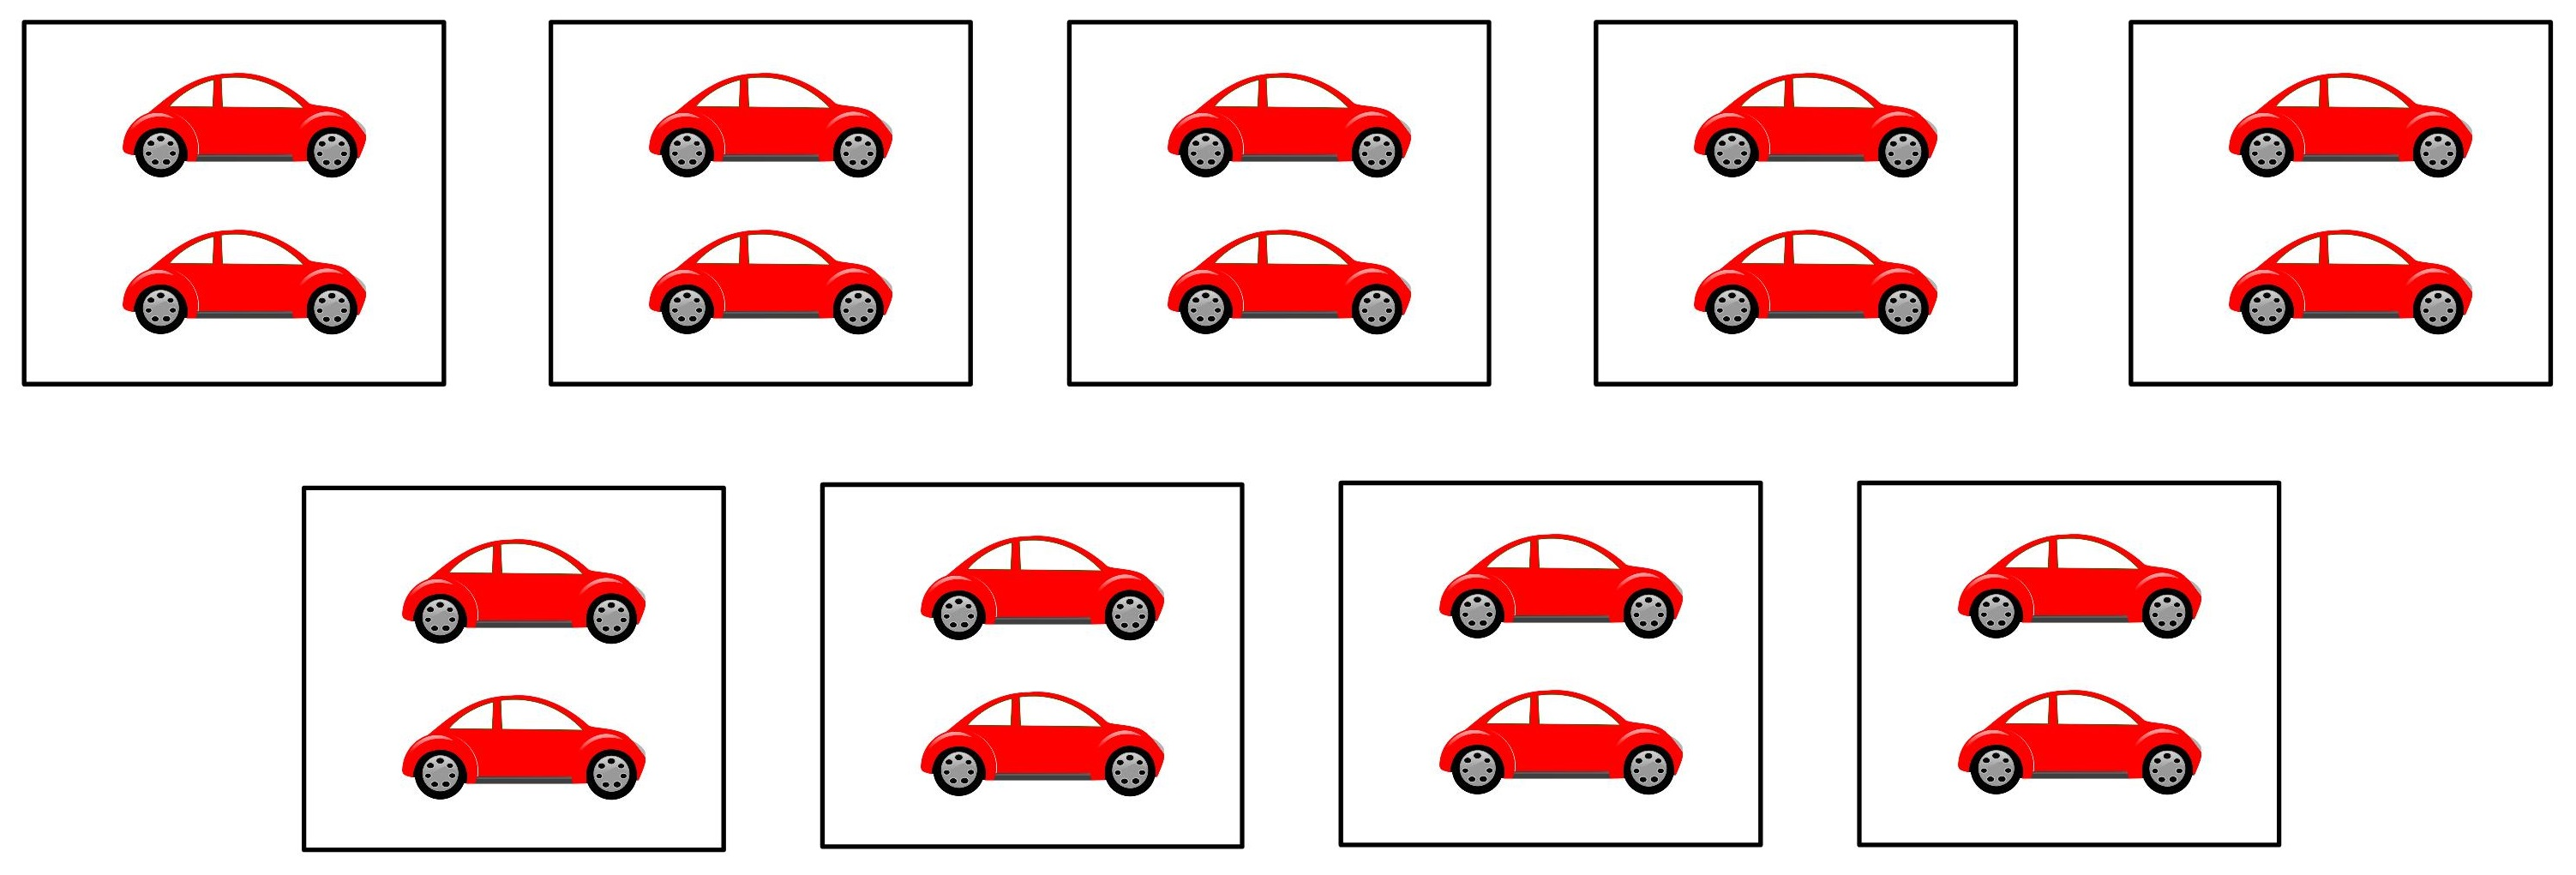 9 groups of cars